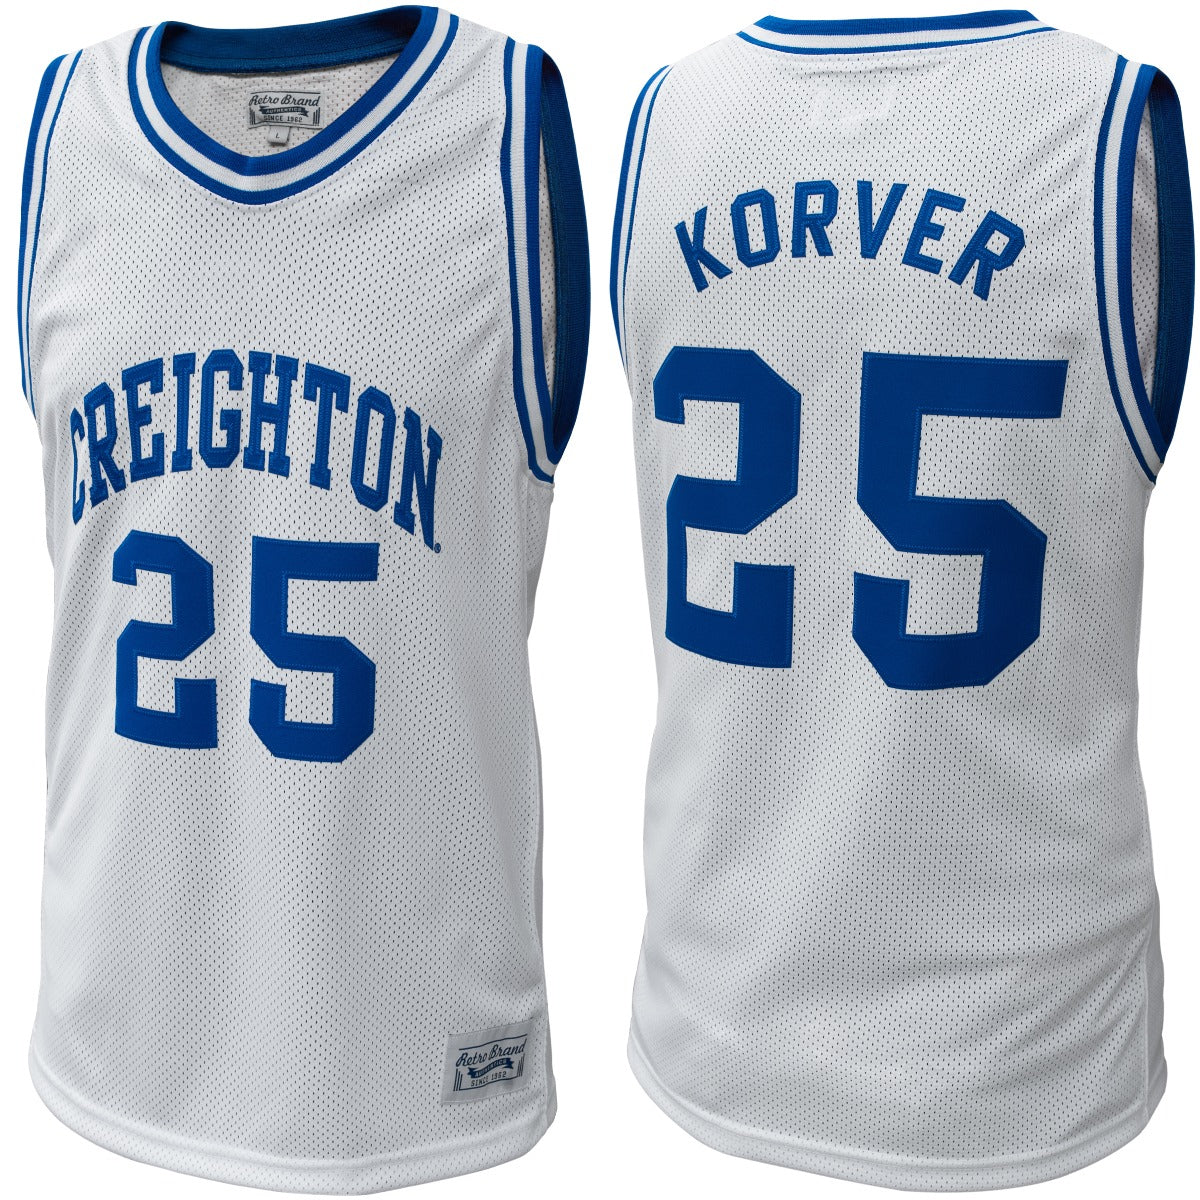 Creighton Bluejays Kyle Corver Throwback Jersey